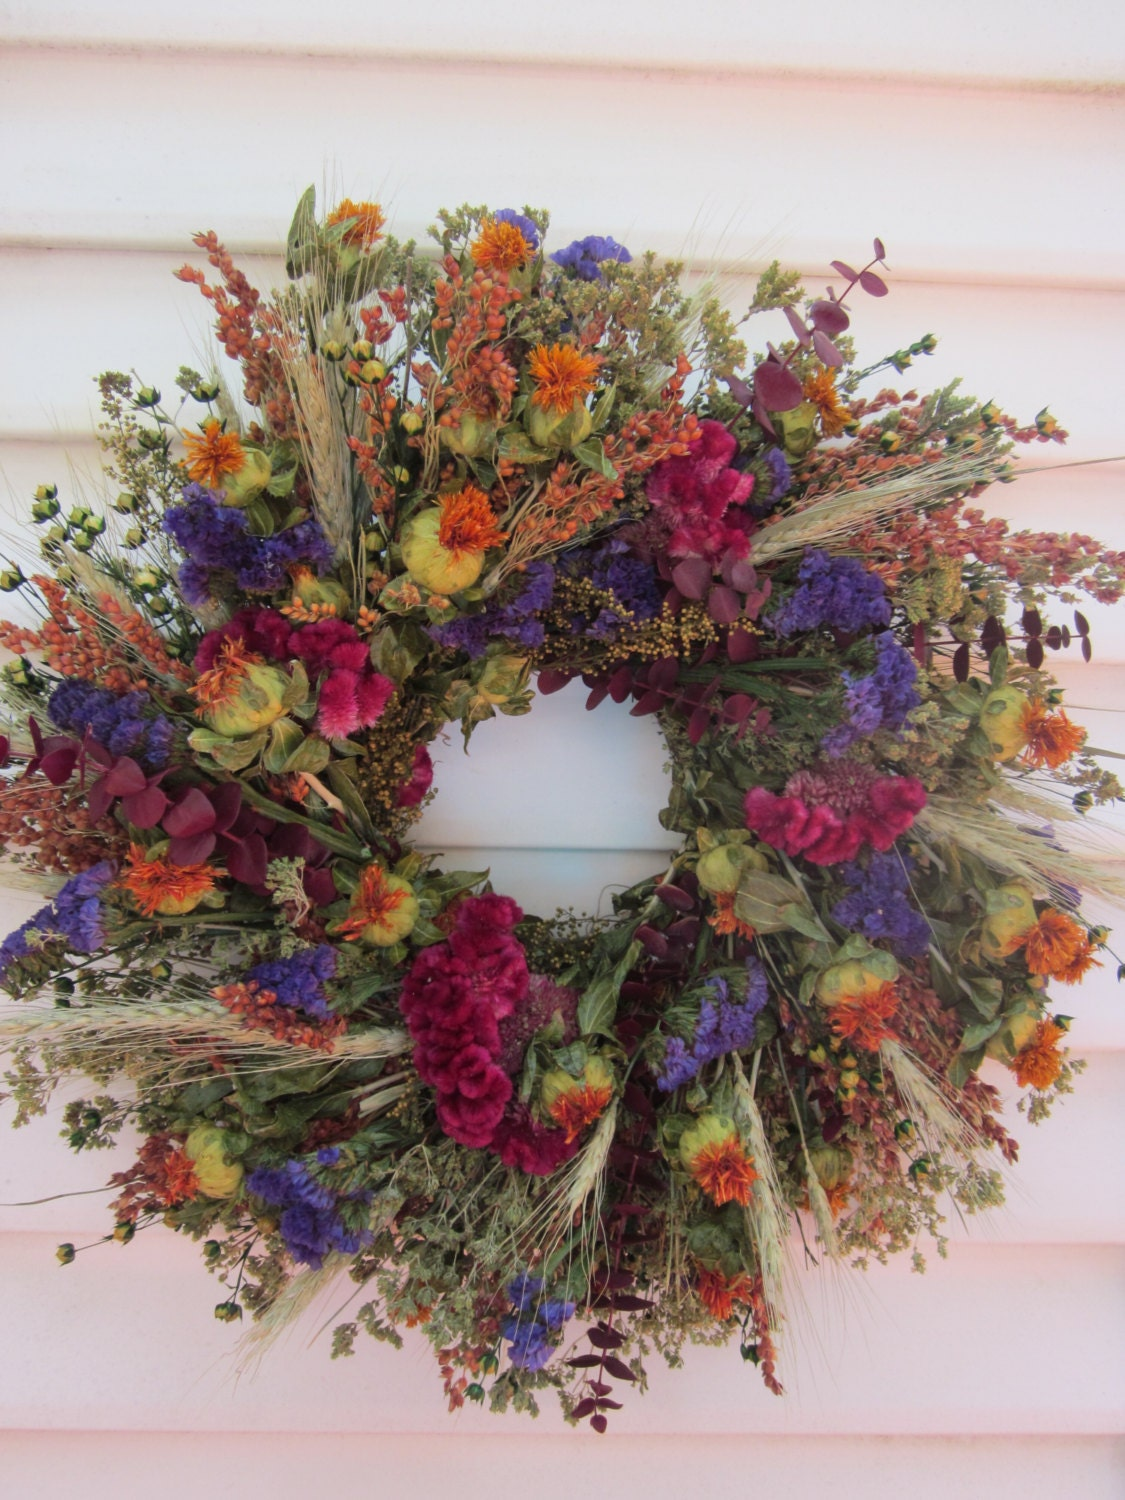 Small Dried Flower Fall Wreath with Colorful Flowers